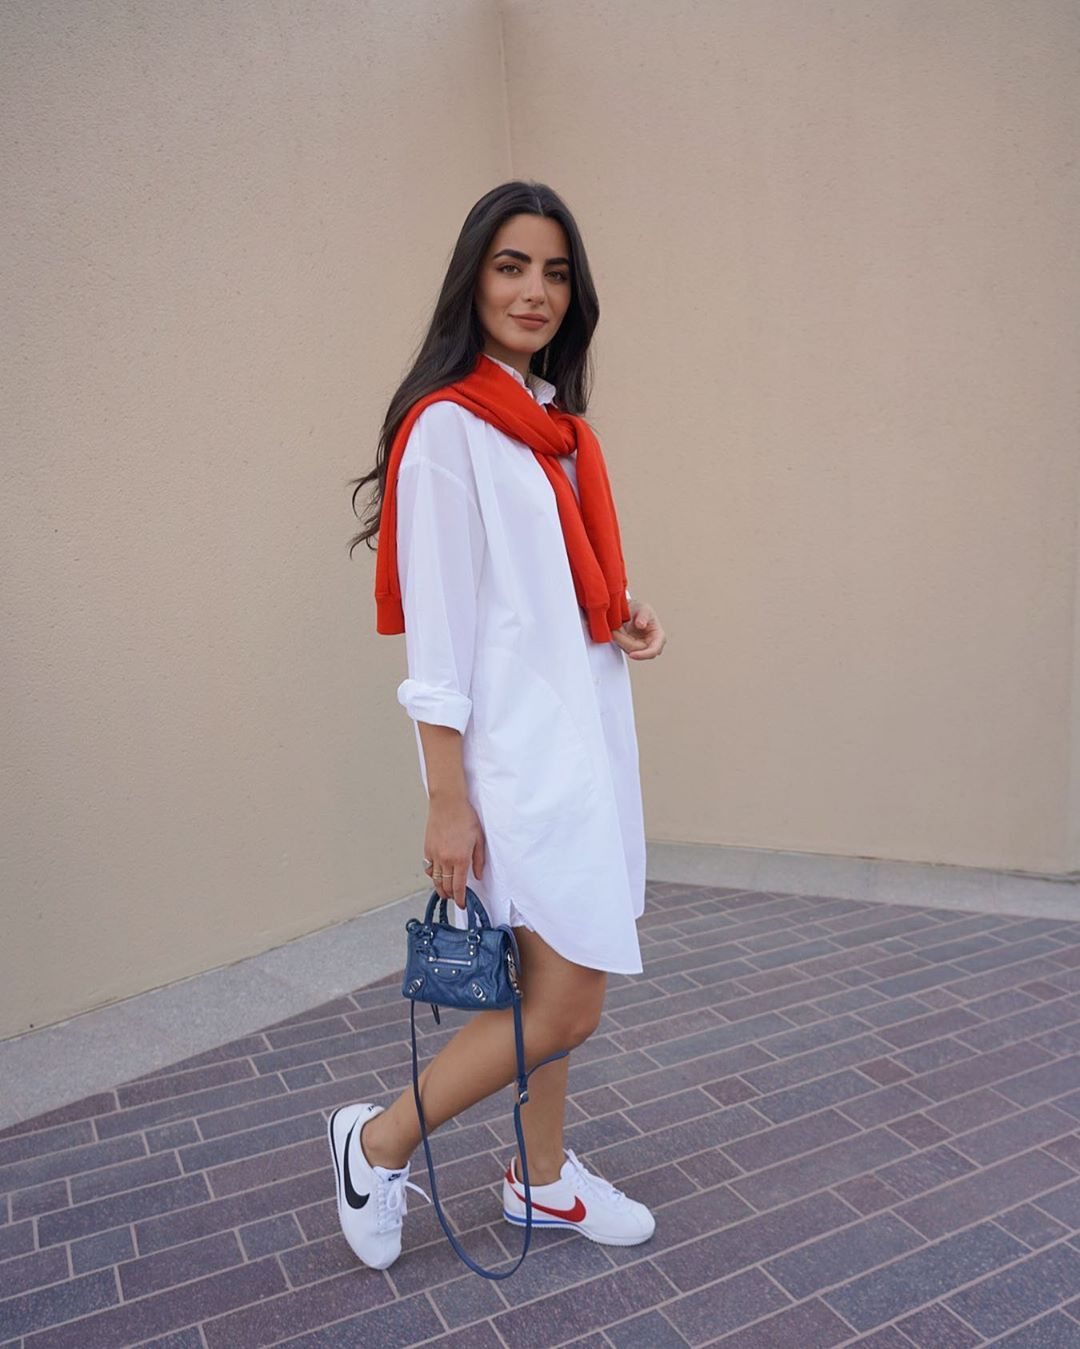 Basma Hamze بسمة حمزة On Instagram Ended Up Wearing Both Cute Everyday Outfits Dress And Sneakers Outfit Chic Outfits Classy